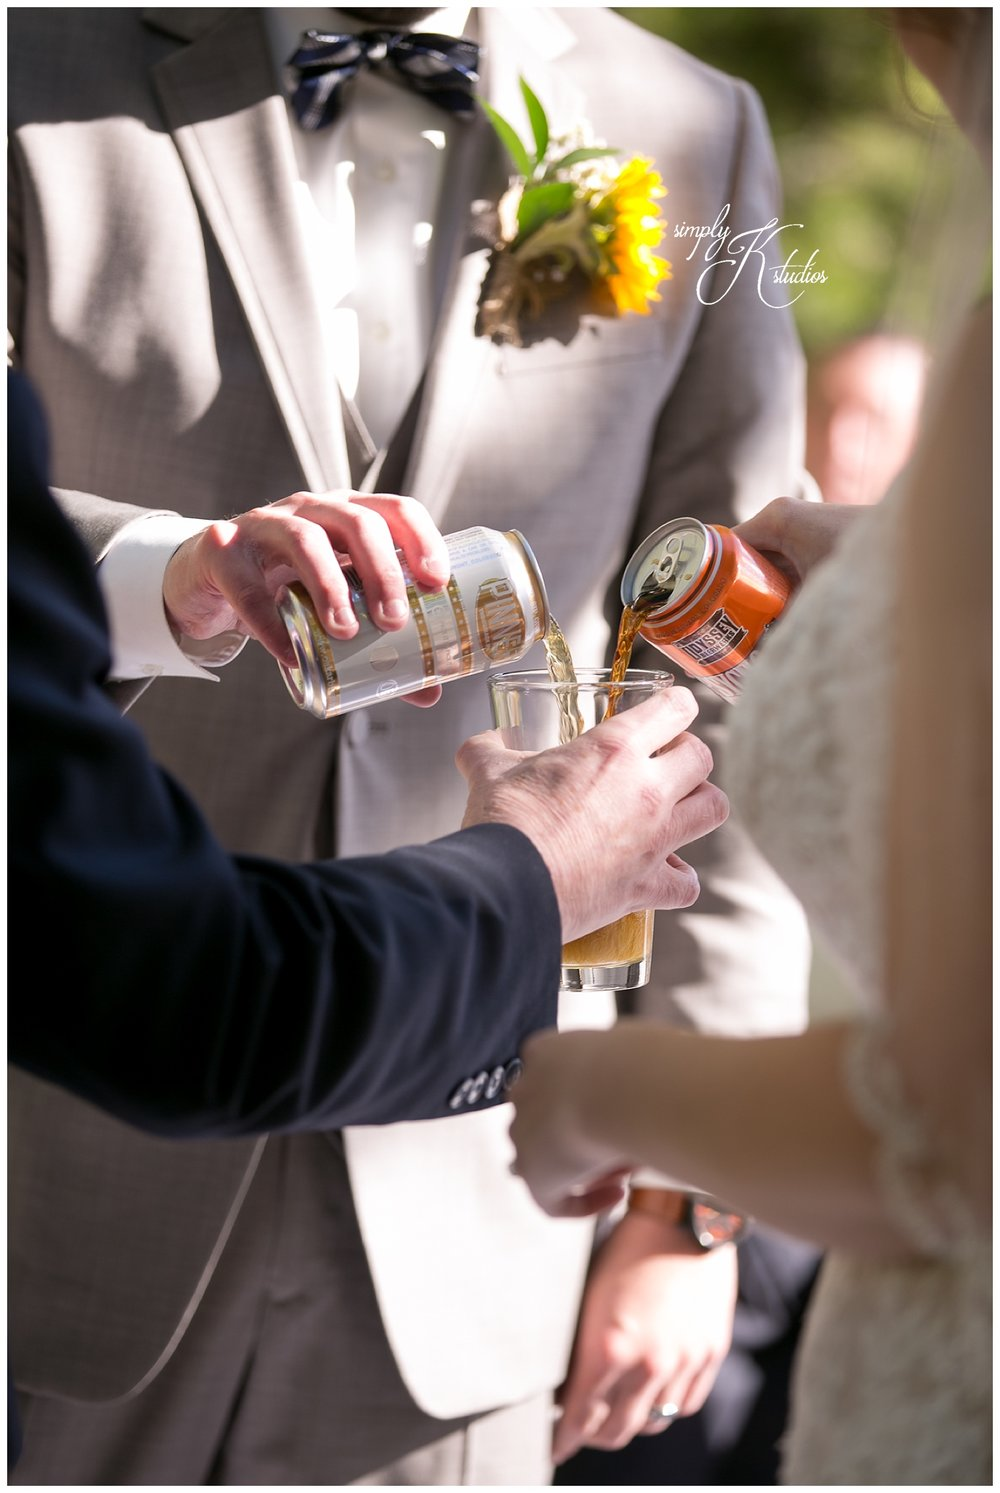 Craft Beer Pour at a Wedding.jpg